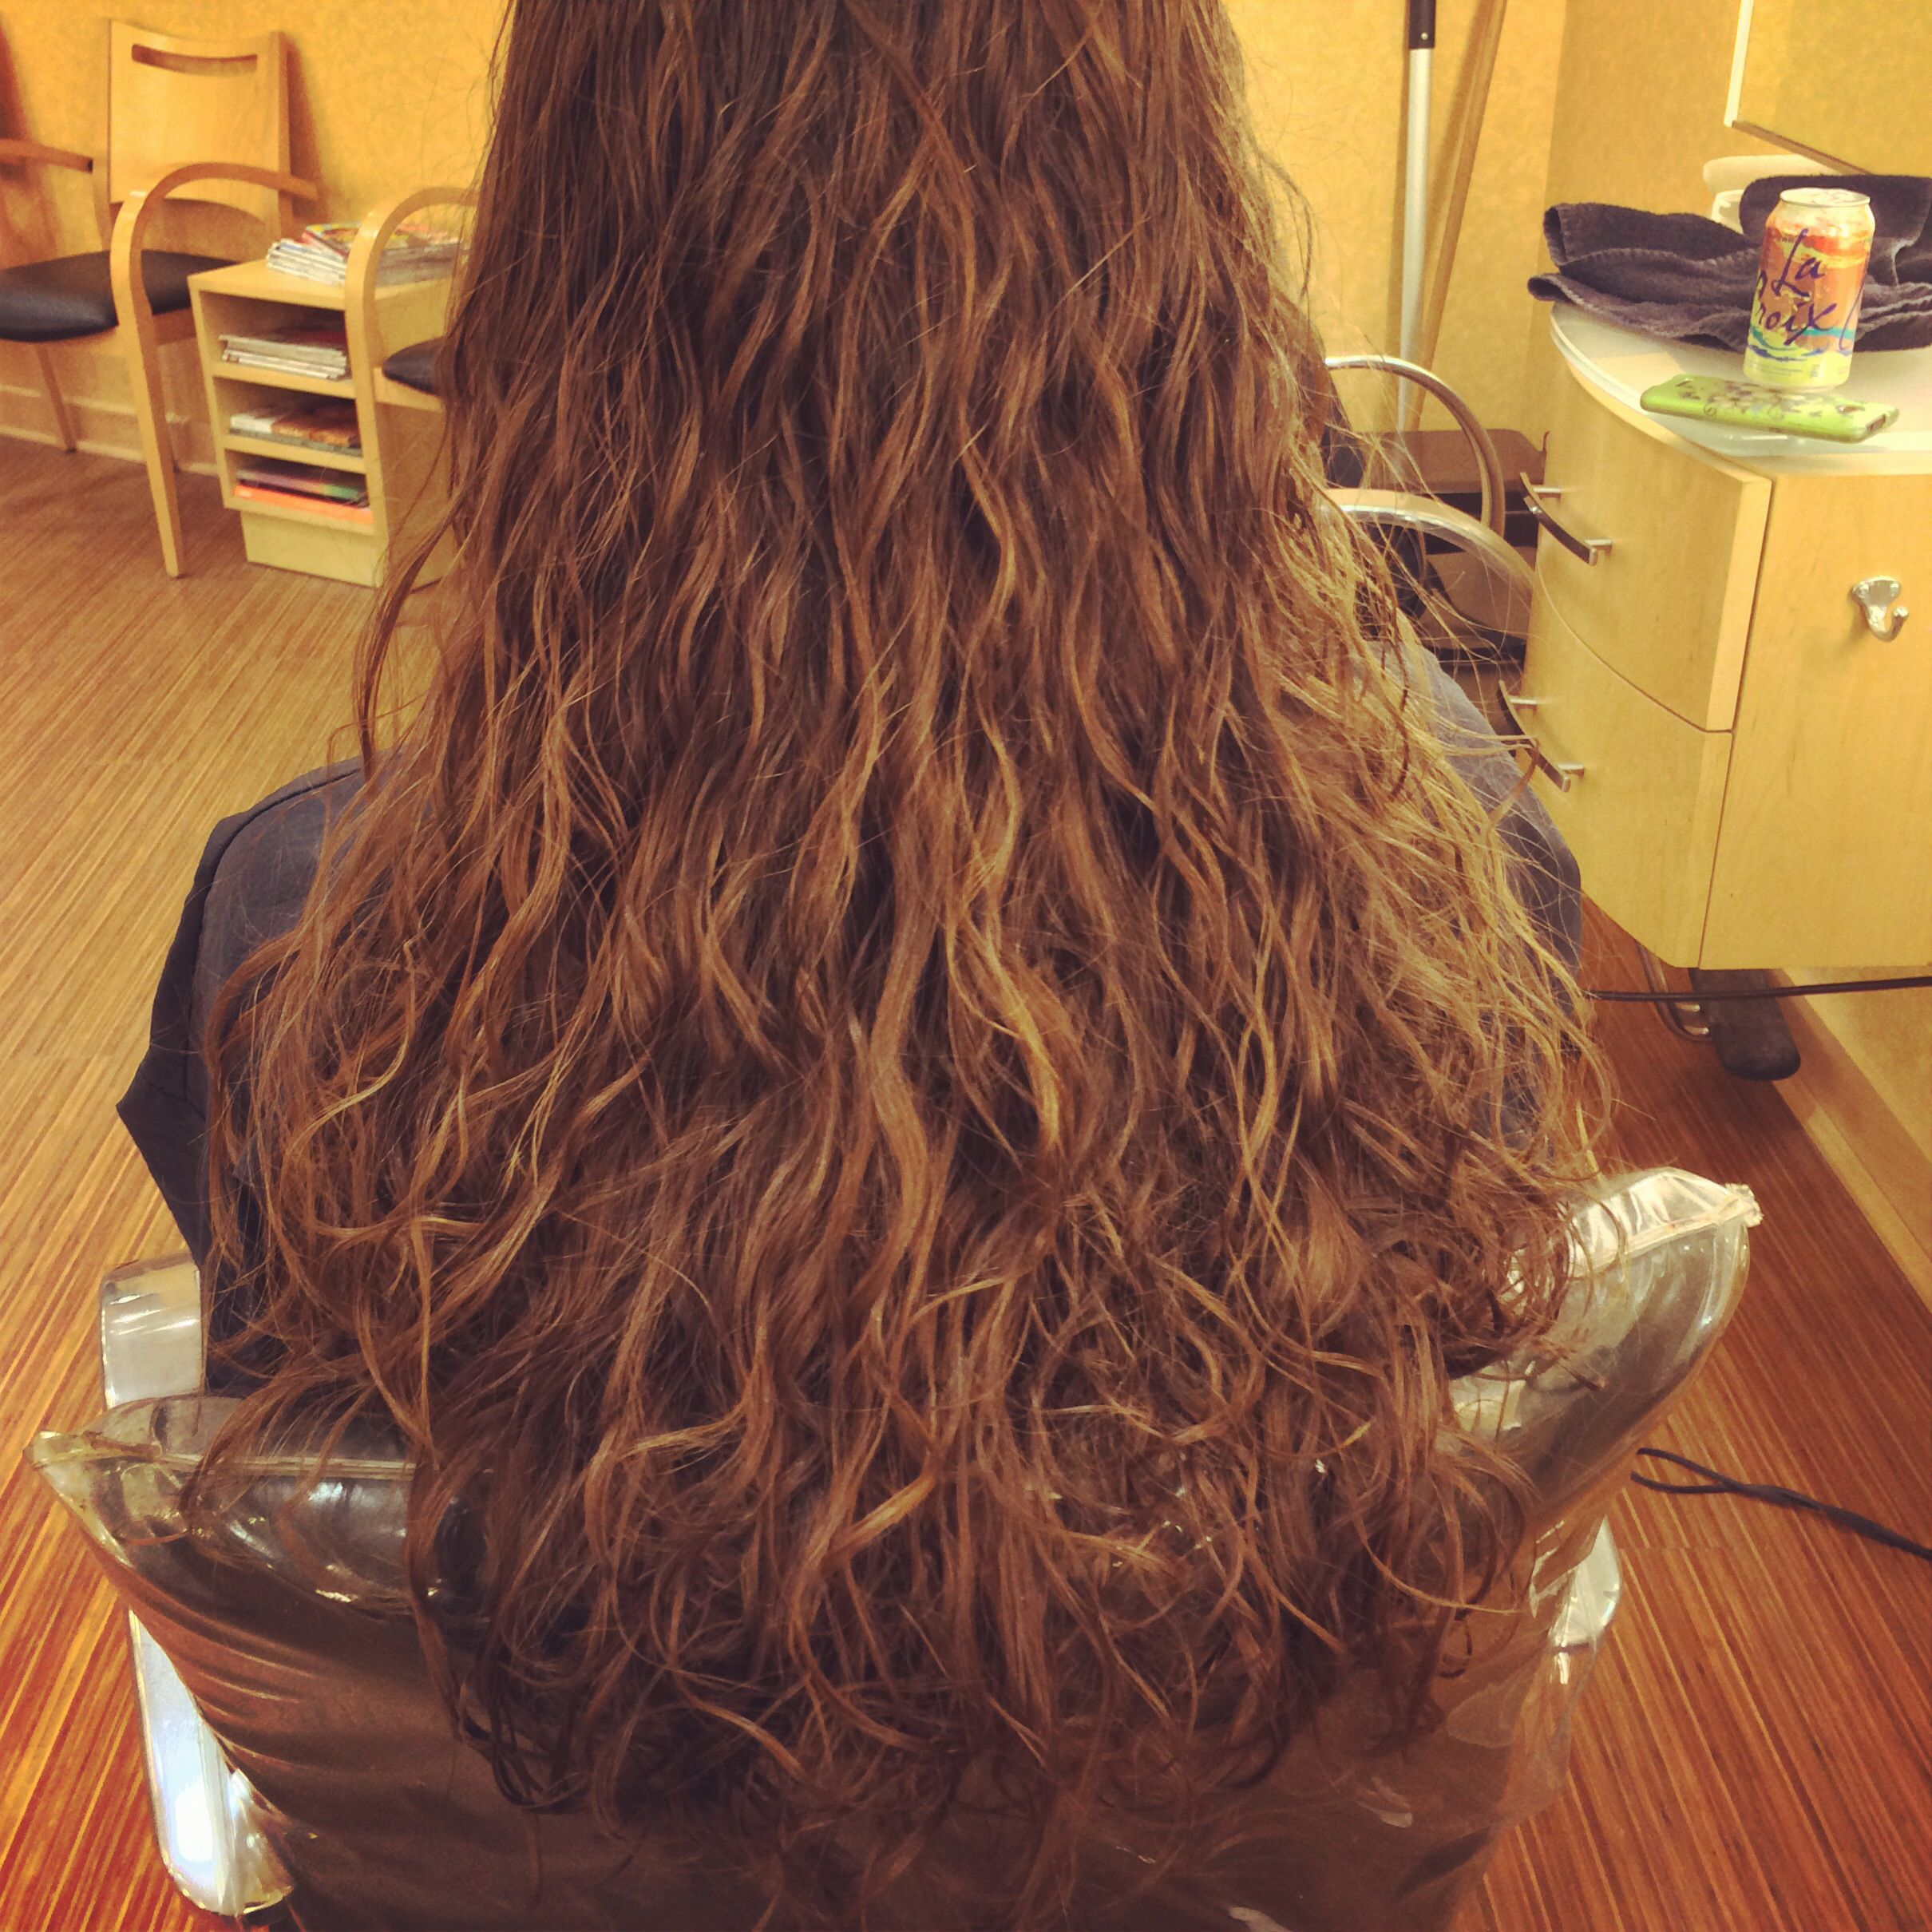 Beach wave perm done by erica strout richardson regis salon beach wave perm done by erica strout richardson regis salon bangor maine pmusecretfo Image collections